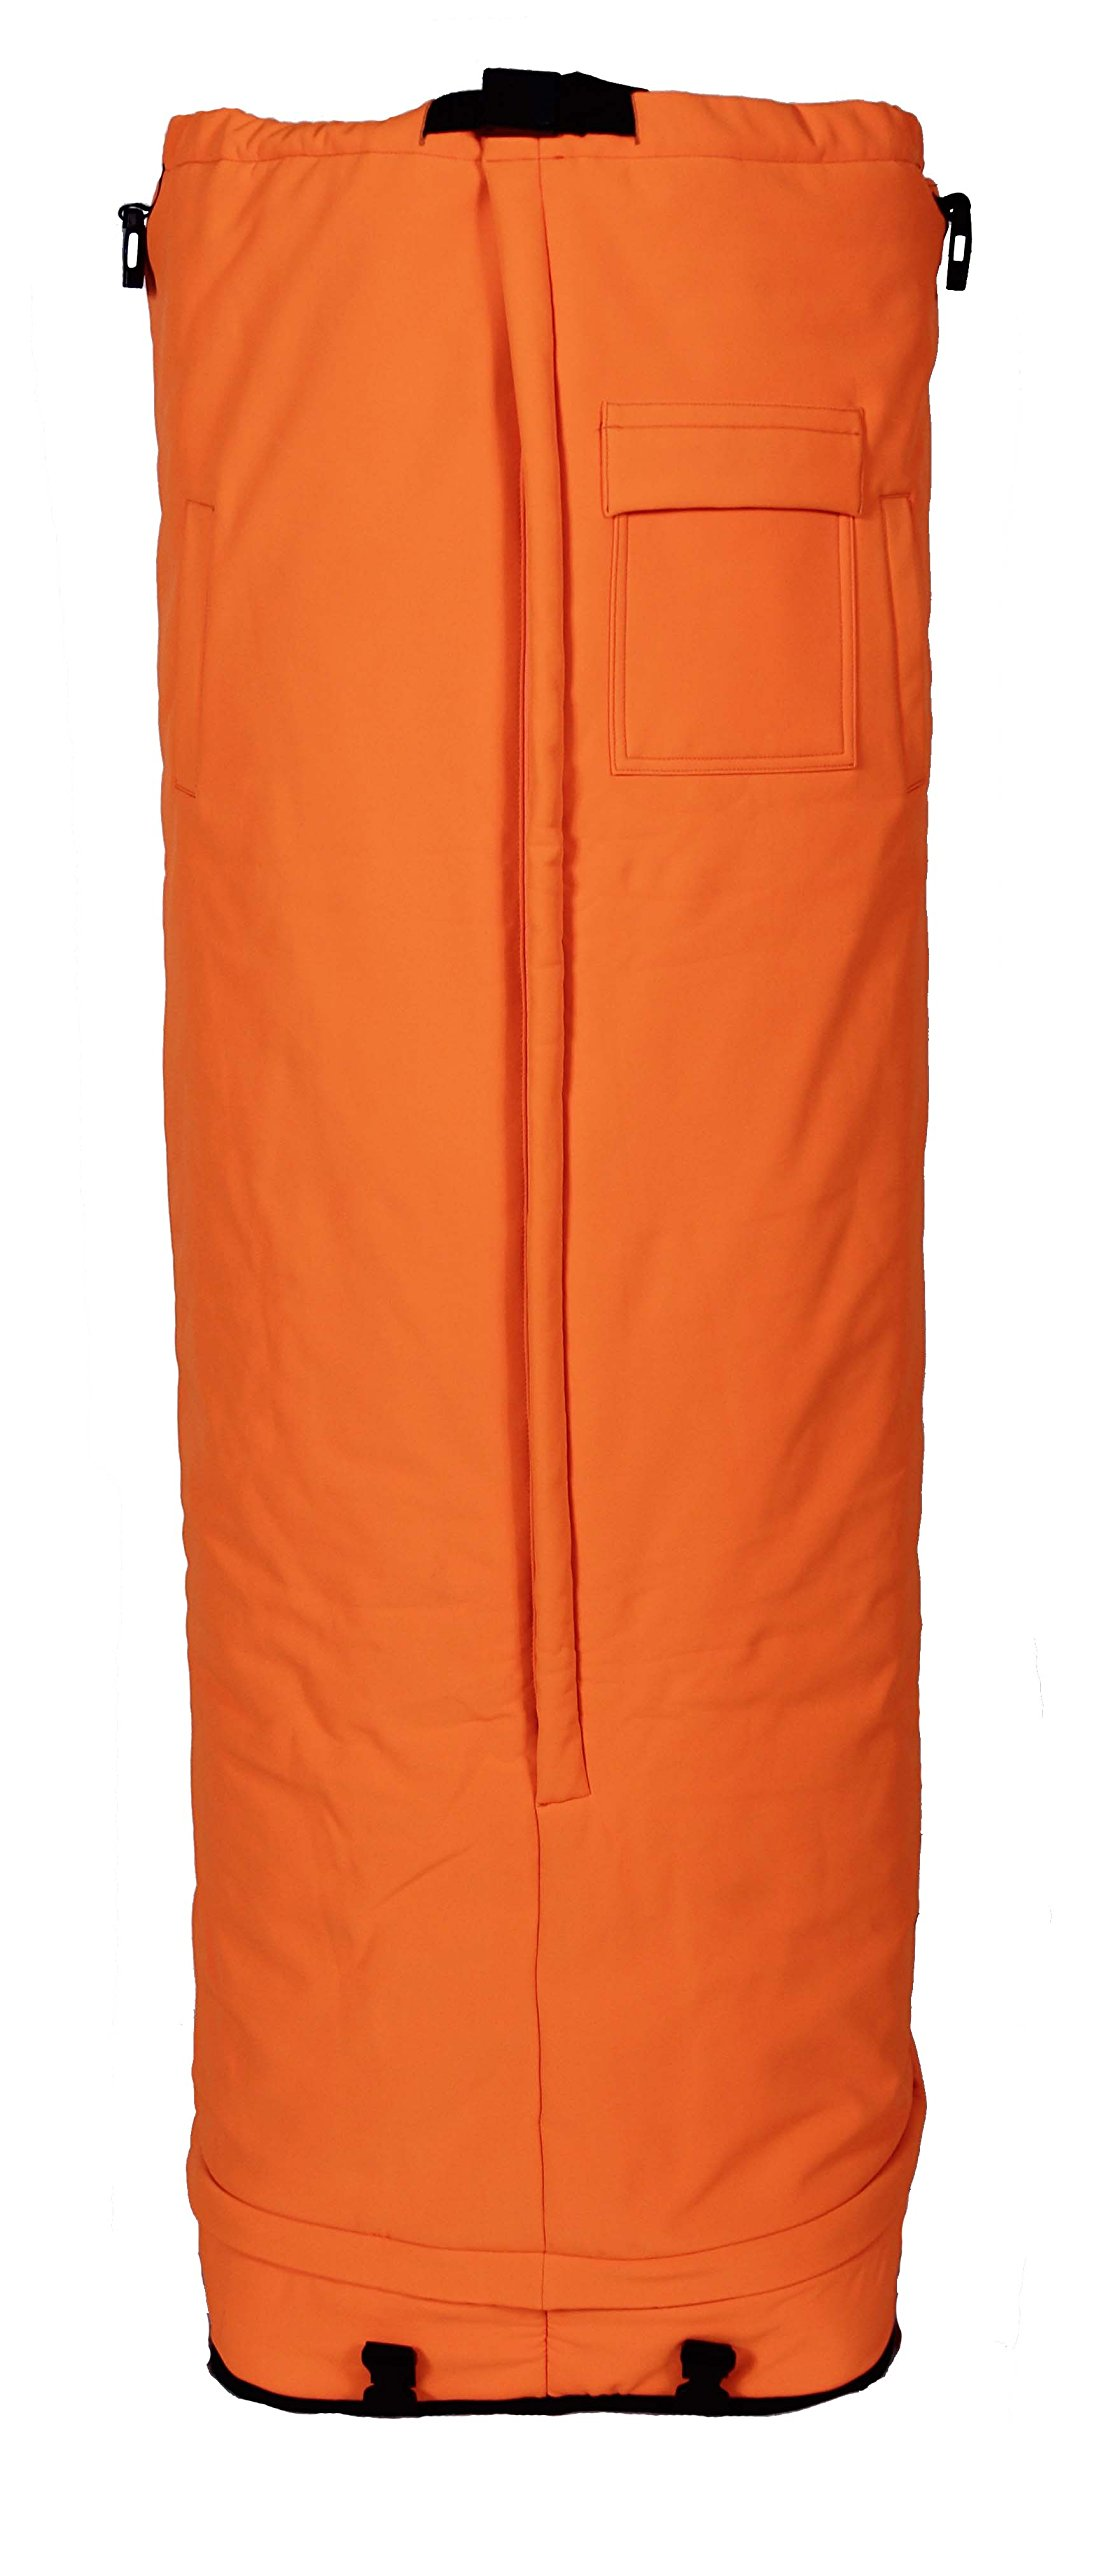 Half in the Bag Heat Retention System, Blaze Orange, 48'' (Large) - Perfect for Hunting Stands or Outdoor Stadiums by Half in the Bag